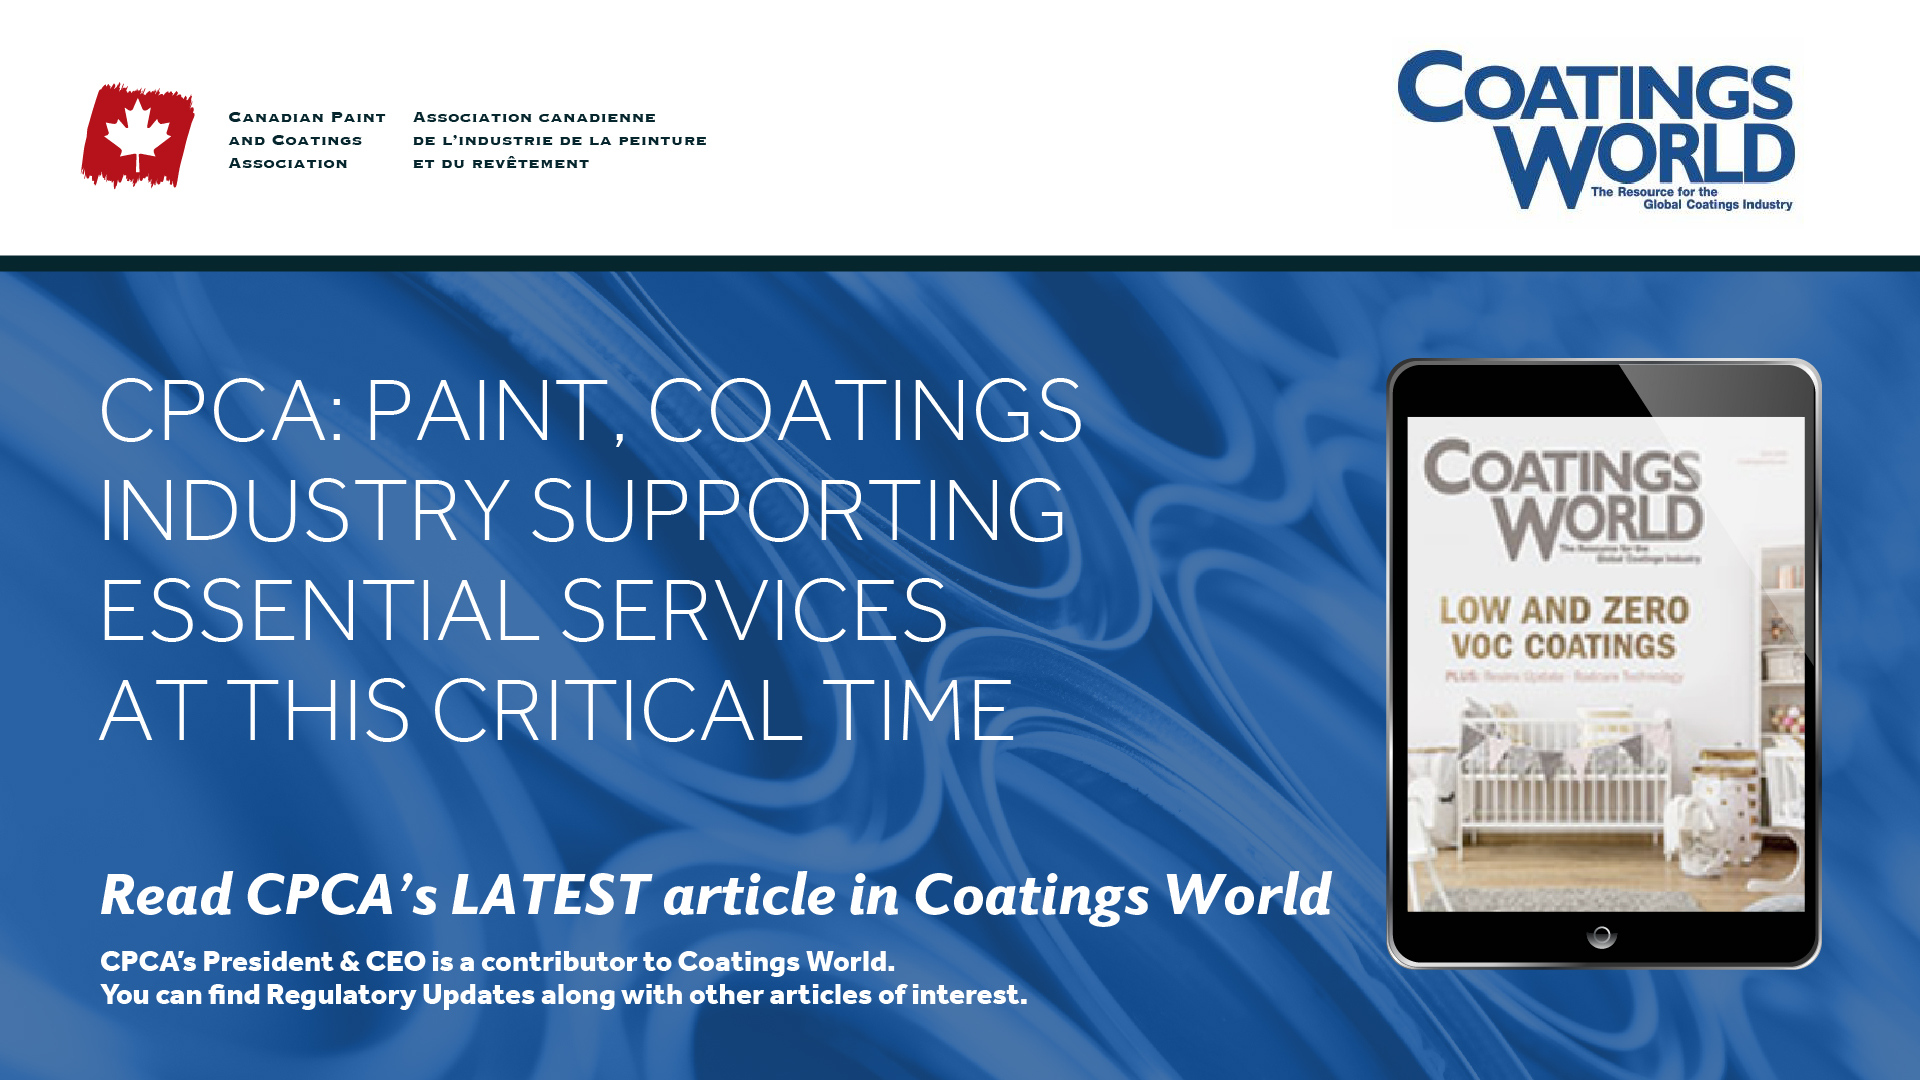 CPCA: Paint, Coatings Industry Supporting Essential Services at this Critical Time